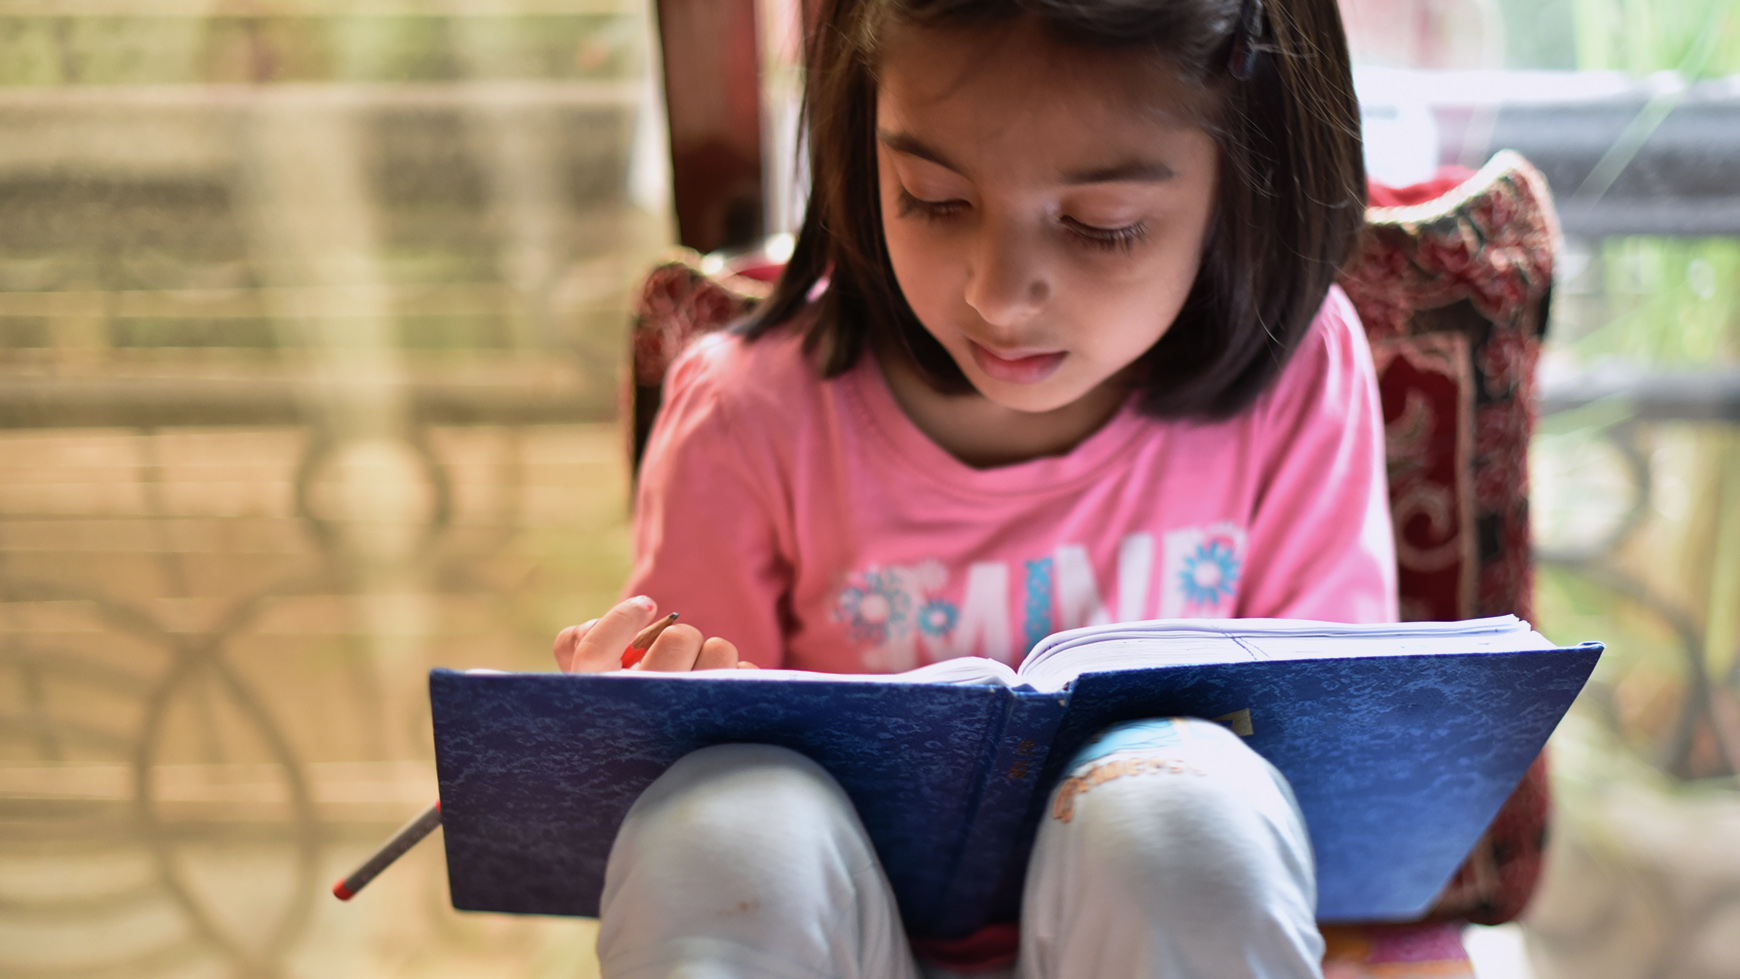 15 Phonics Rules for Reading and Spelling